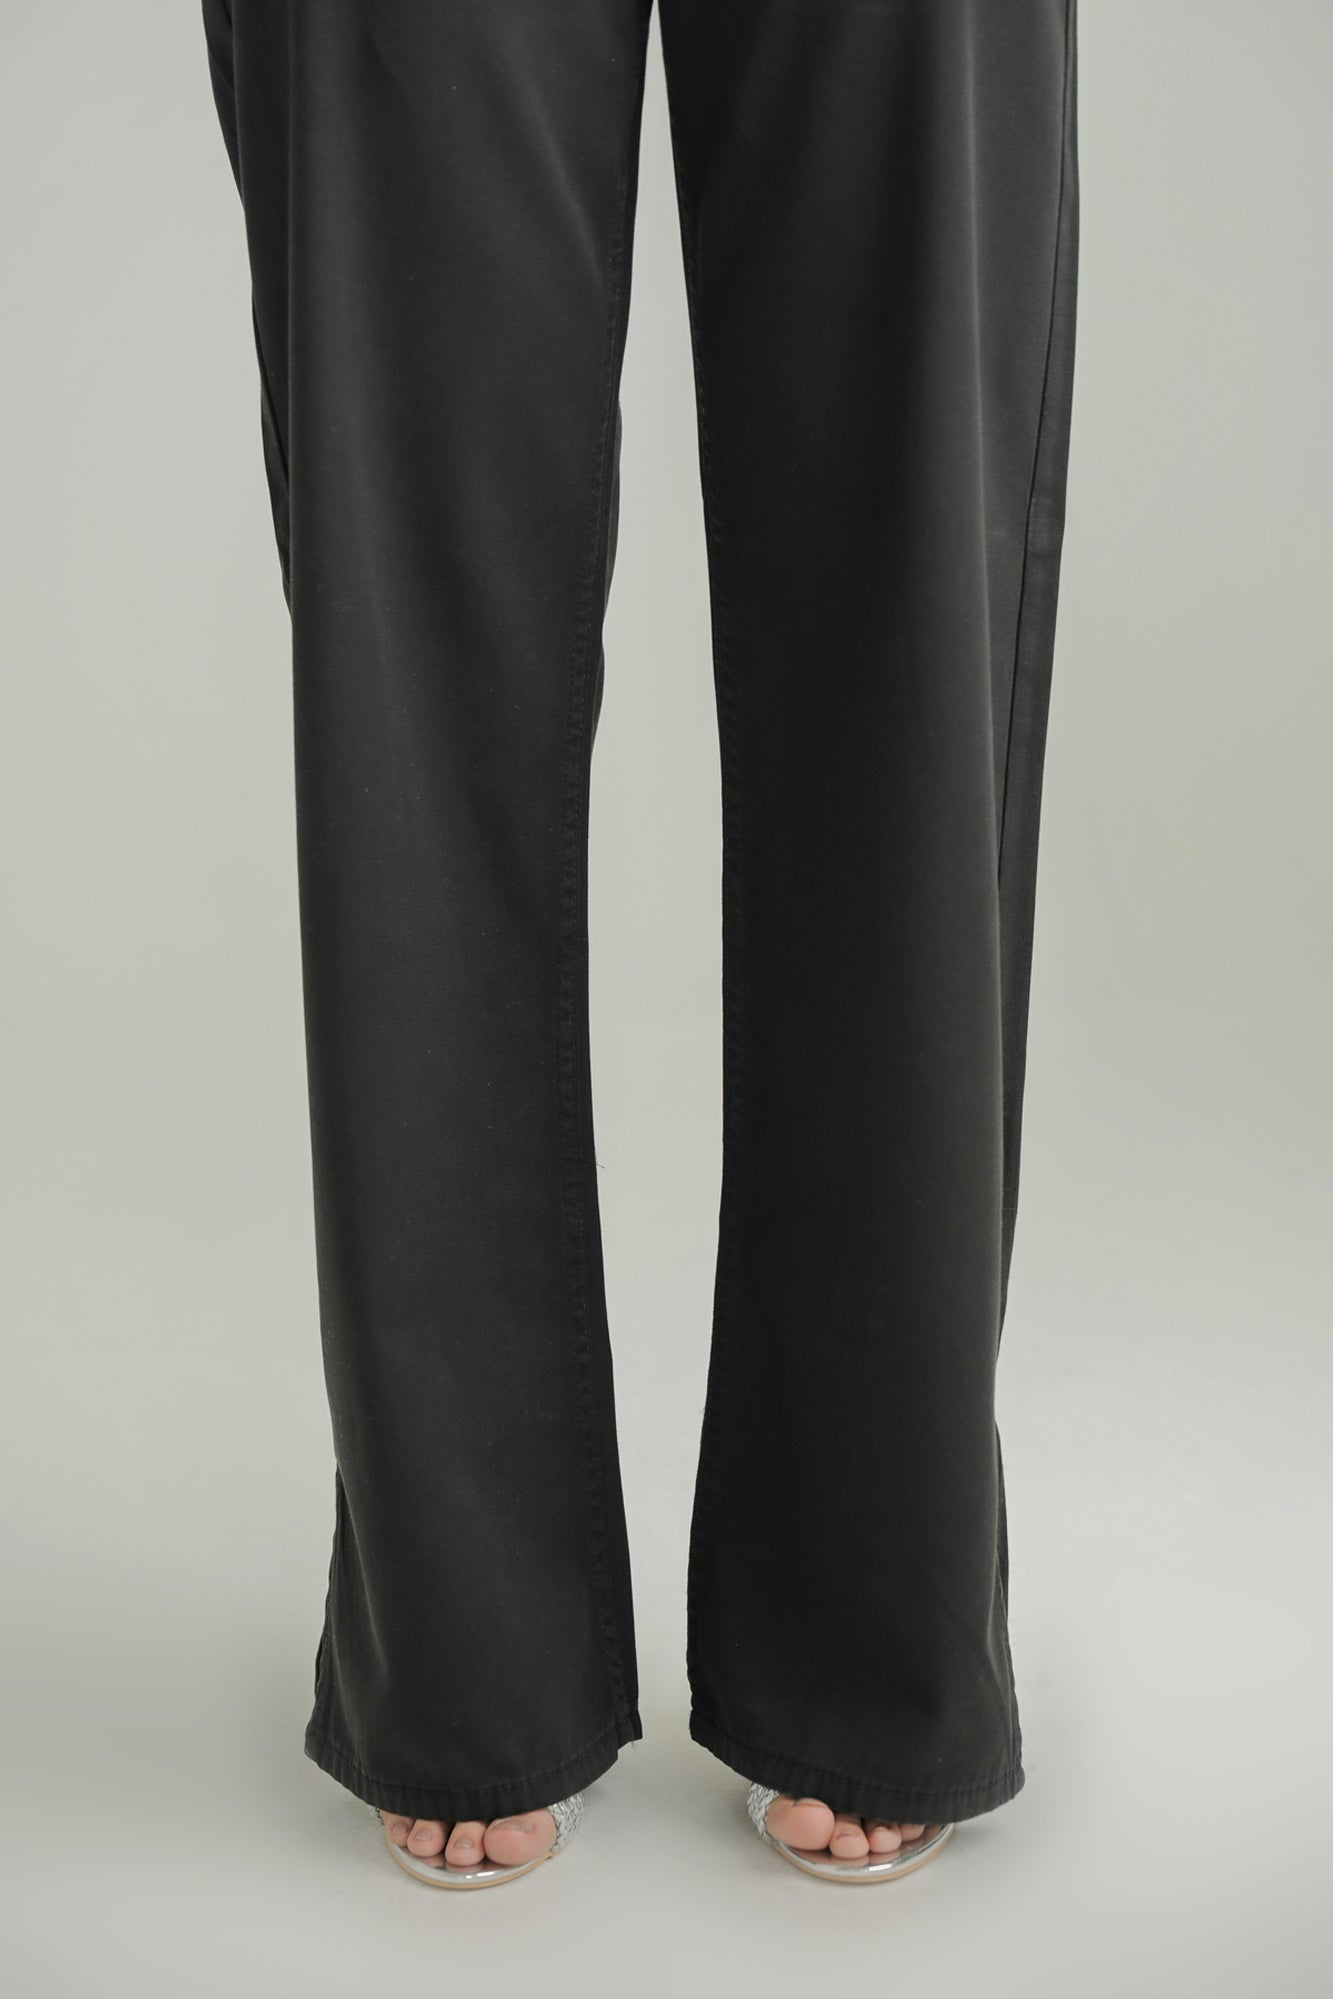 WIDE LEG TROUSER (WBF211223) - Ethnic by Outfitters